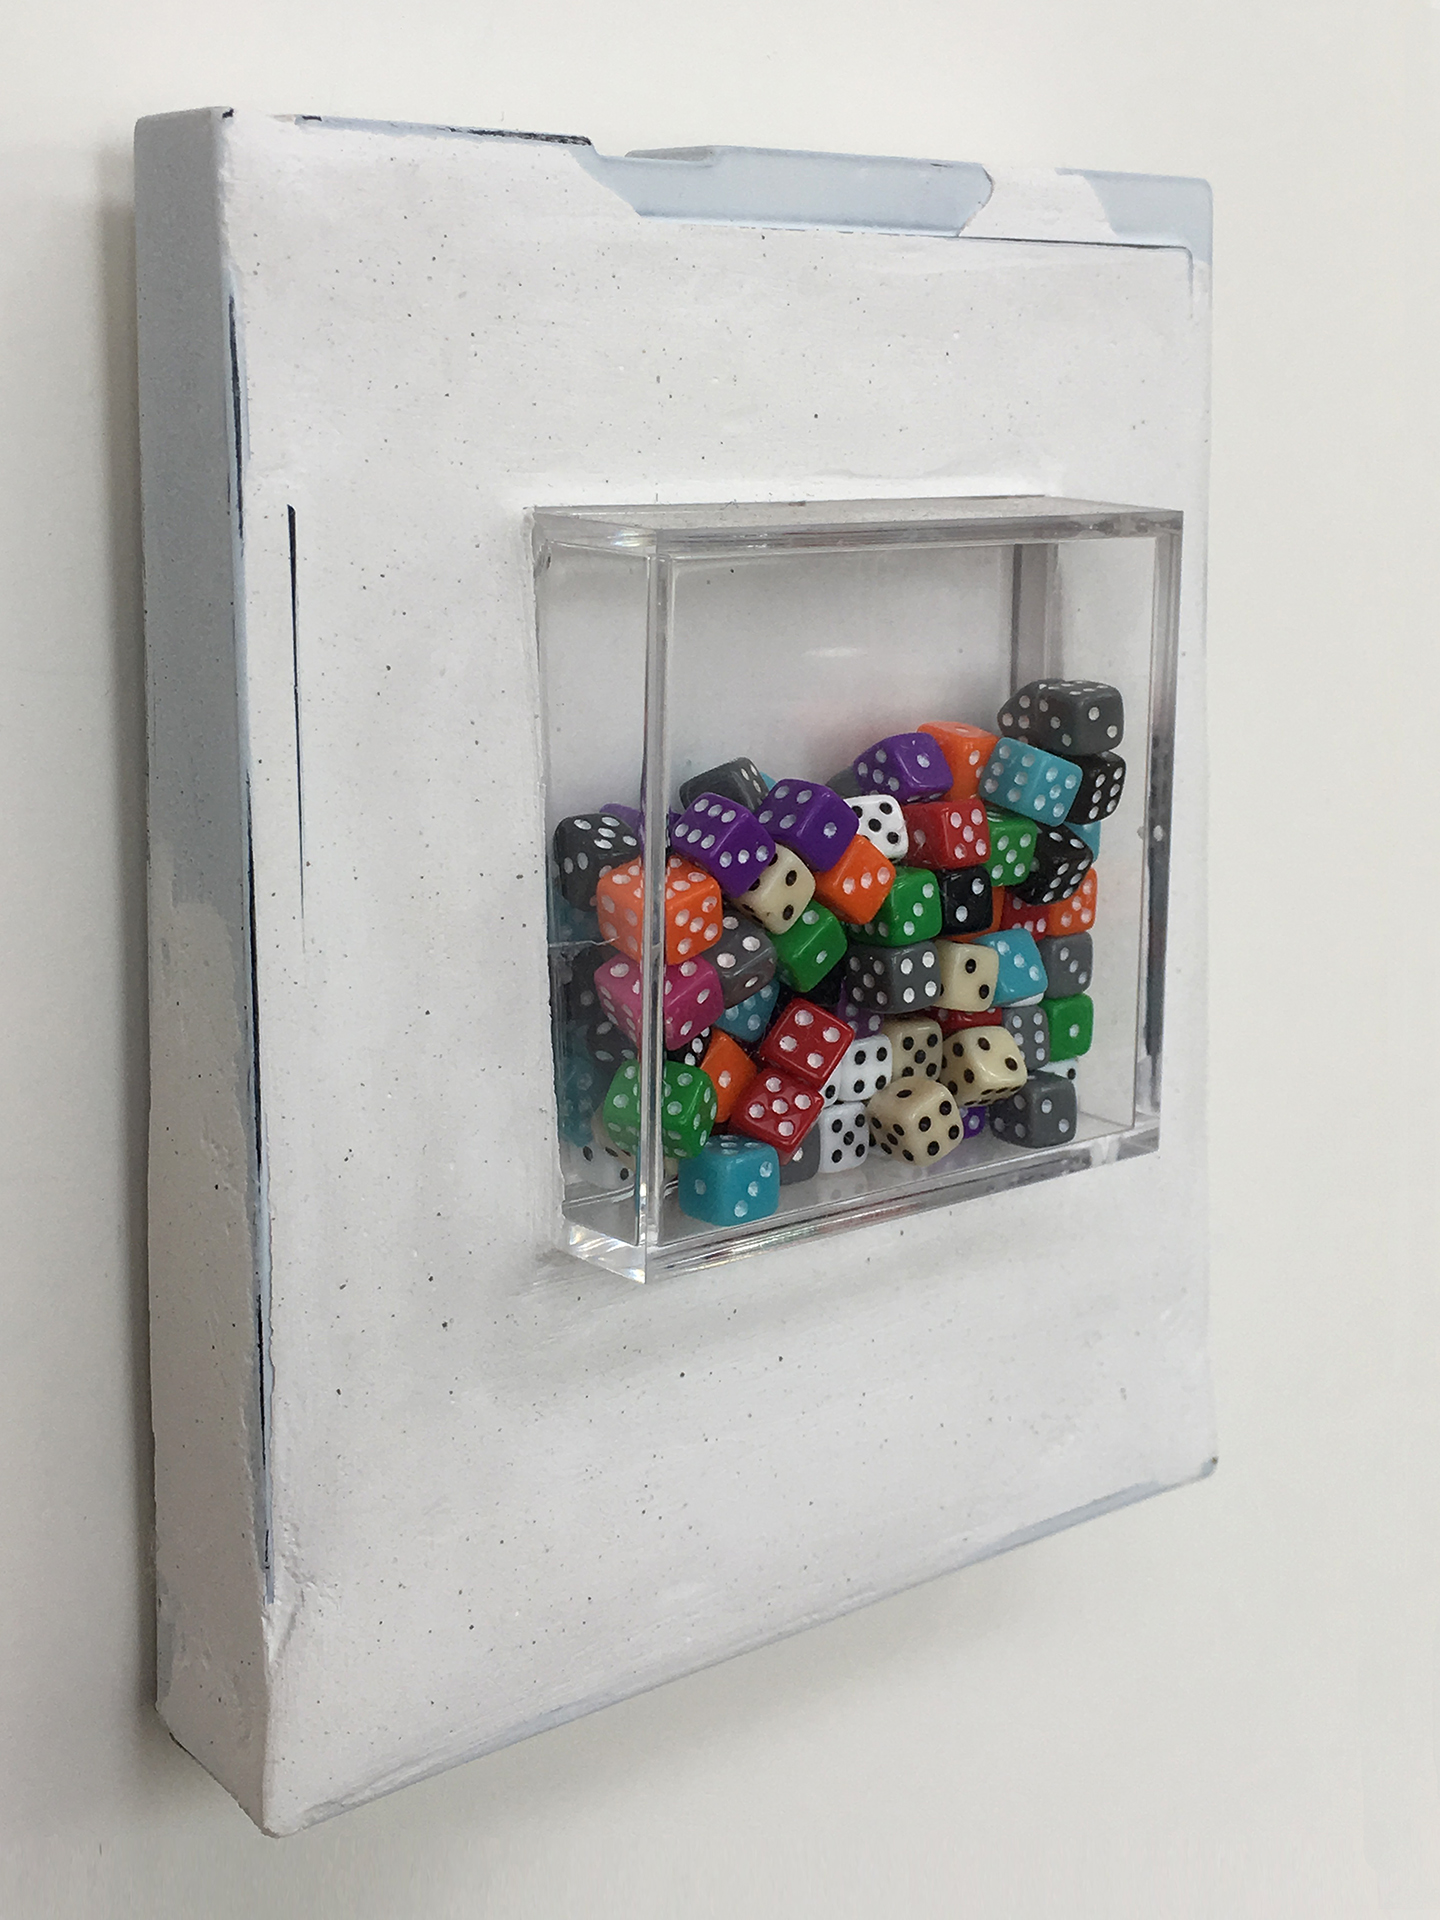 "Box 47 - Chance, 2008. Polaroid box, Paris plaster, plastic box, dice. W3.75"" x H4.25"" x D1""."